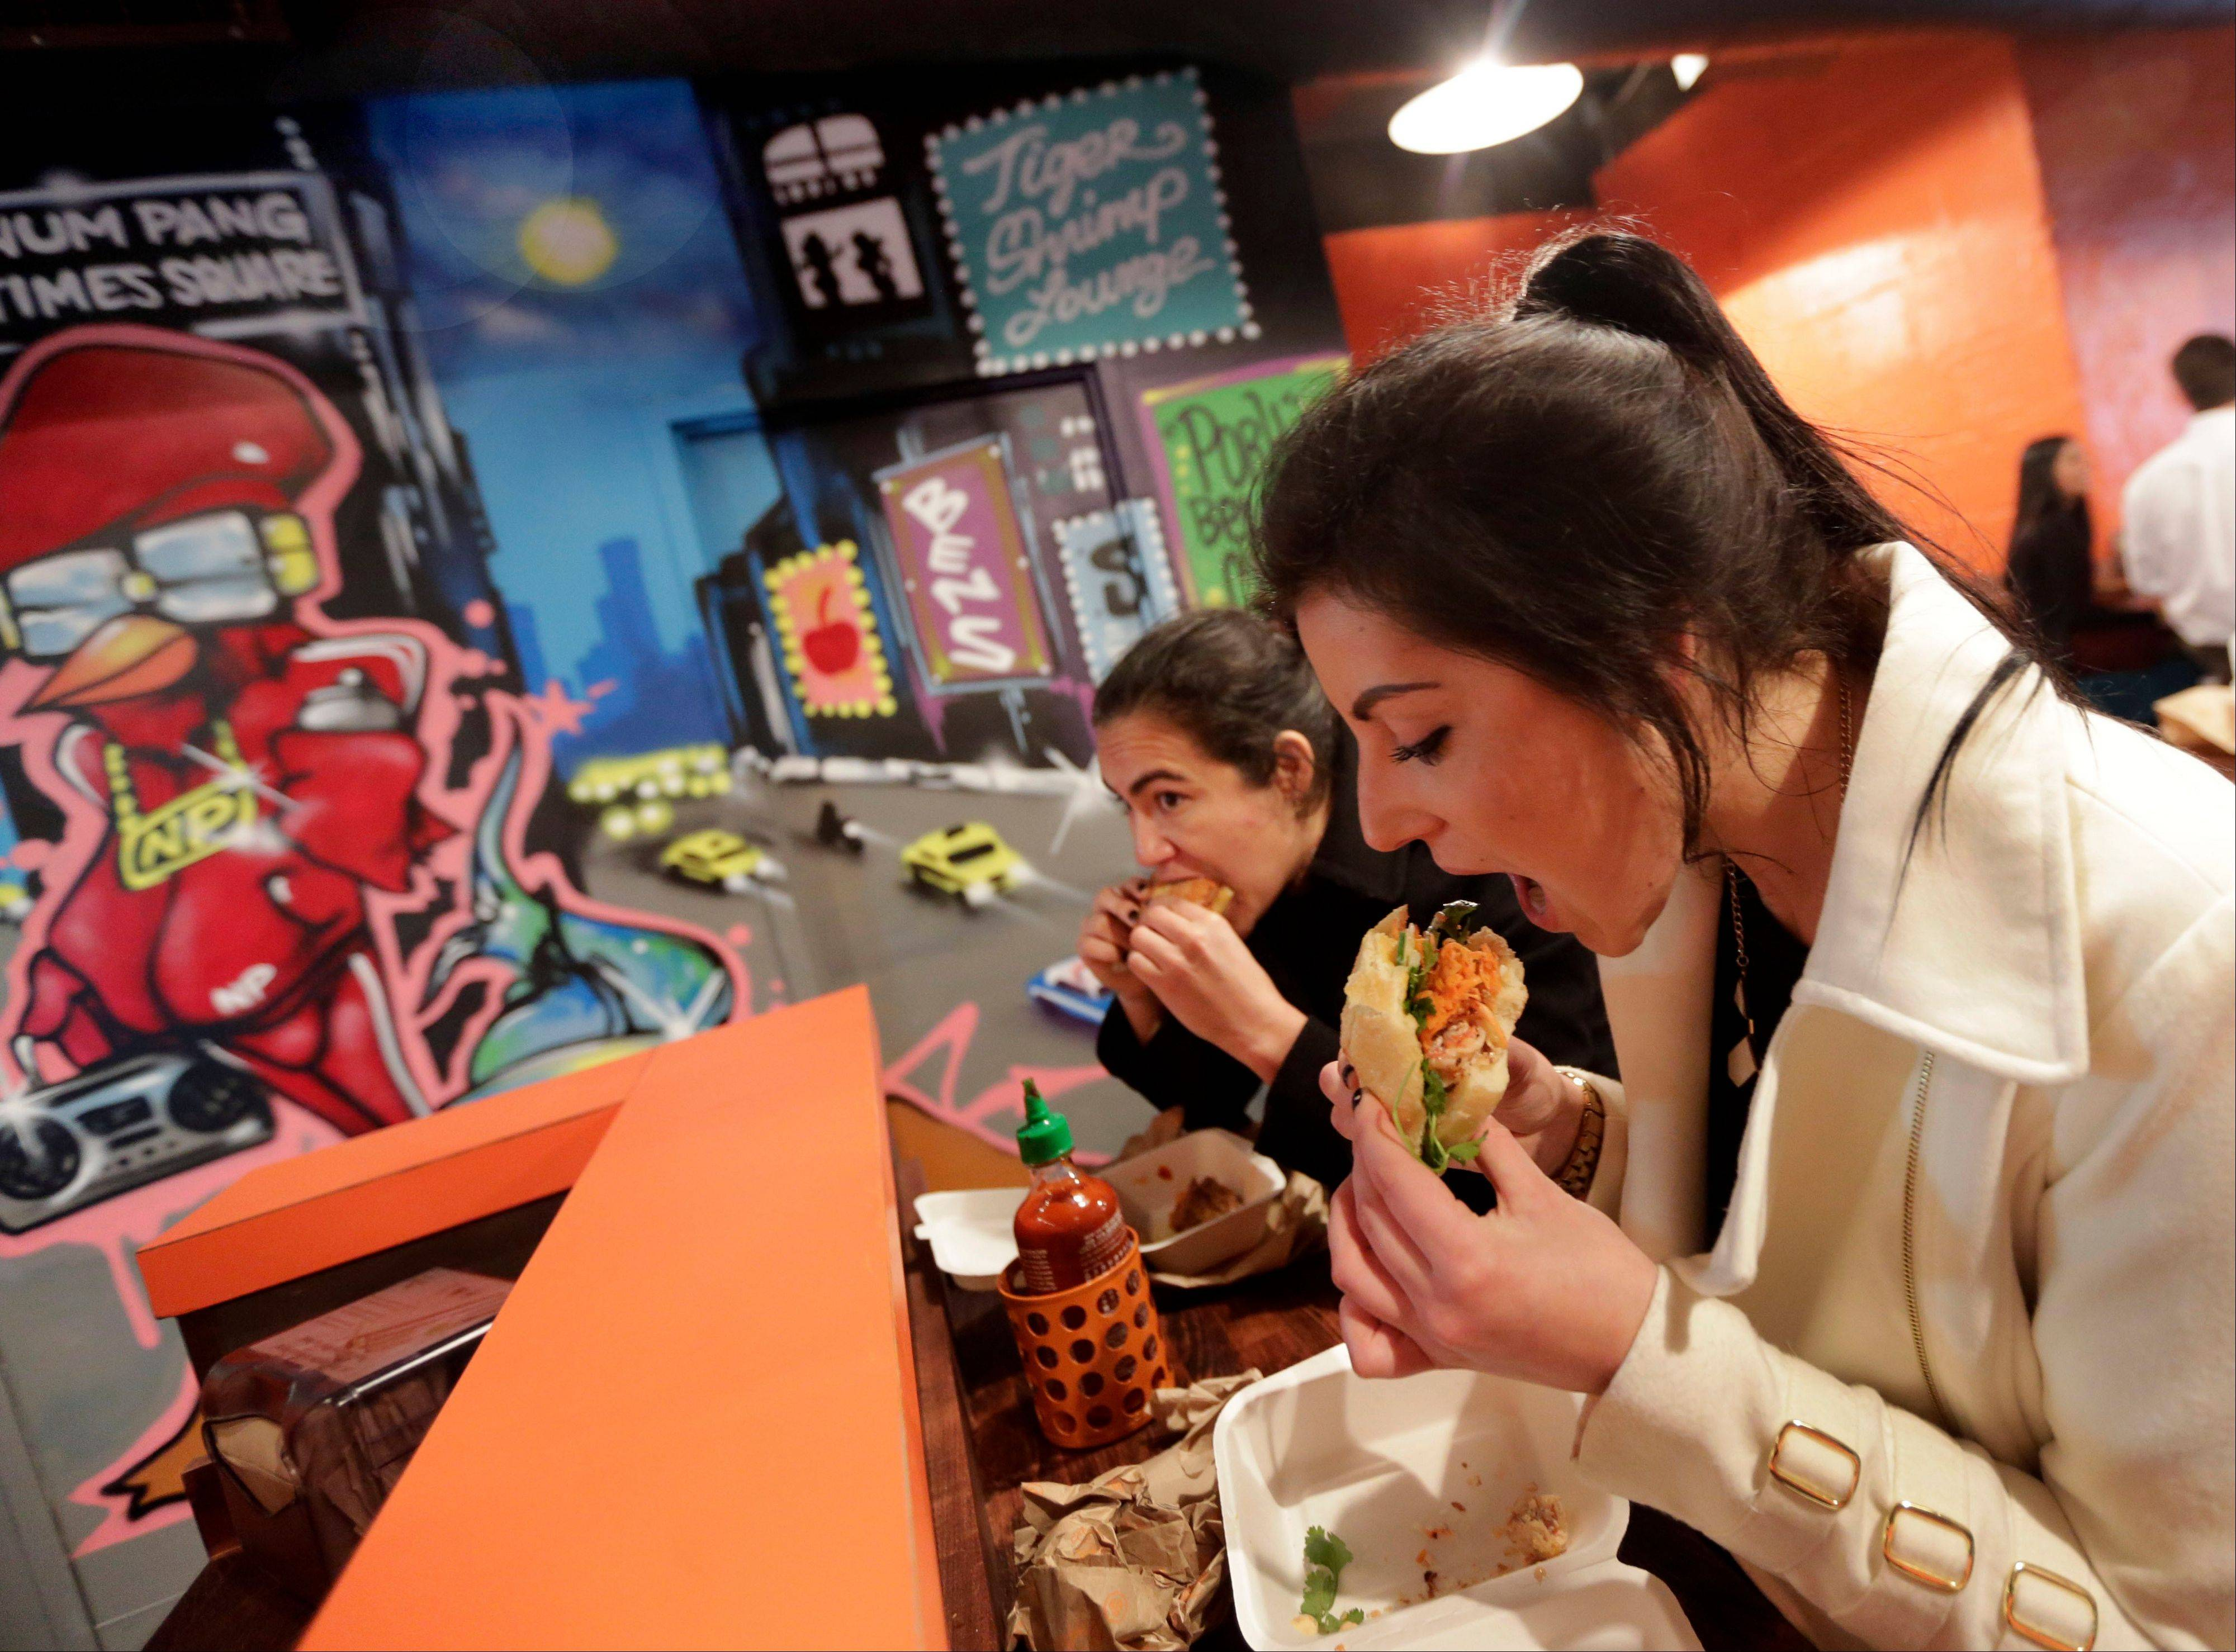 Krista Agatielli, right, eats at Cambodian sandwich shop Num Pang, near New York�s Rockefeller Center.